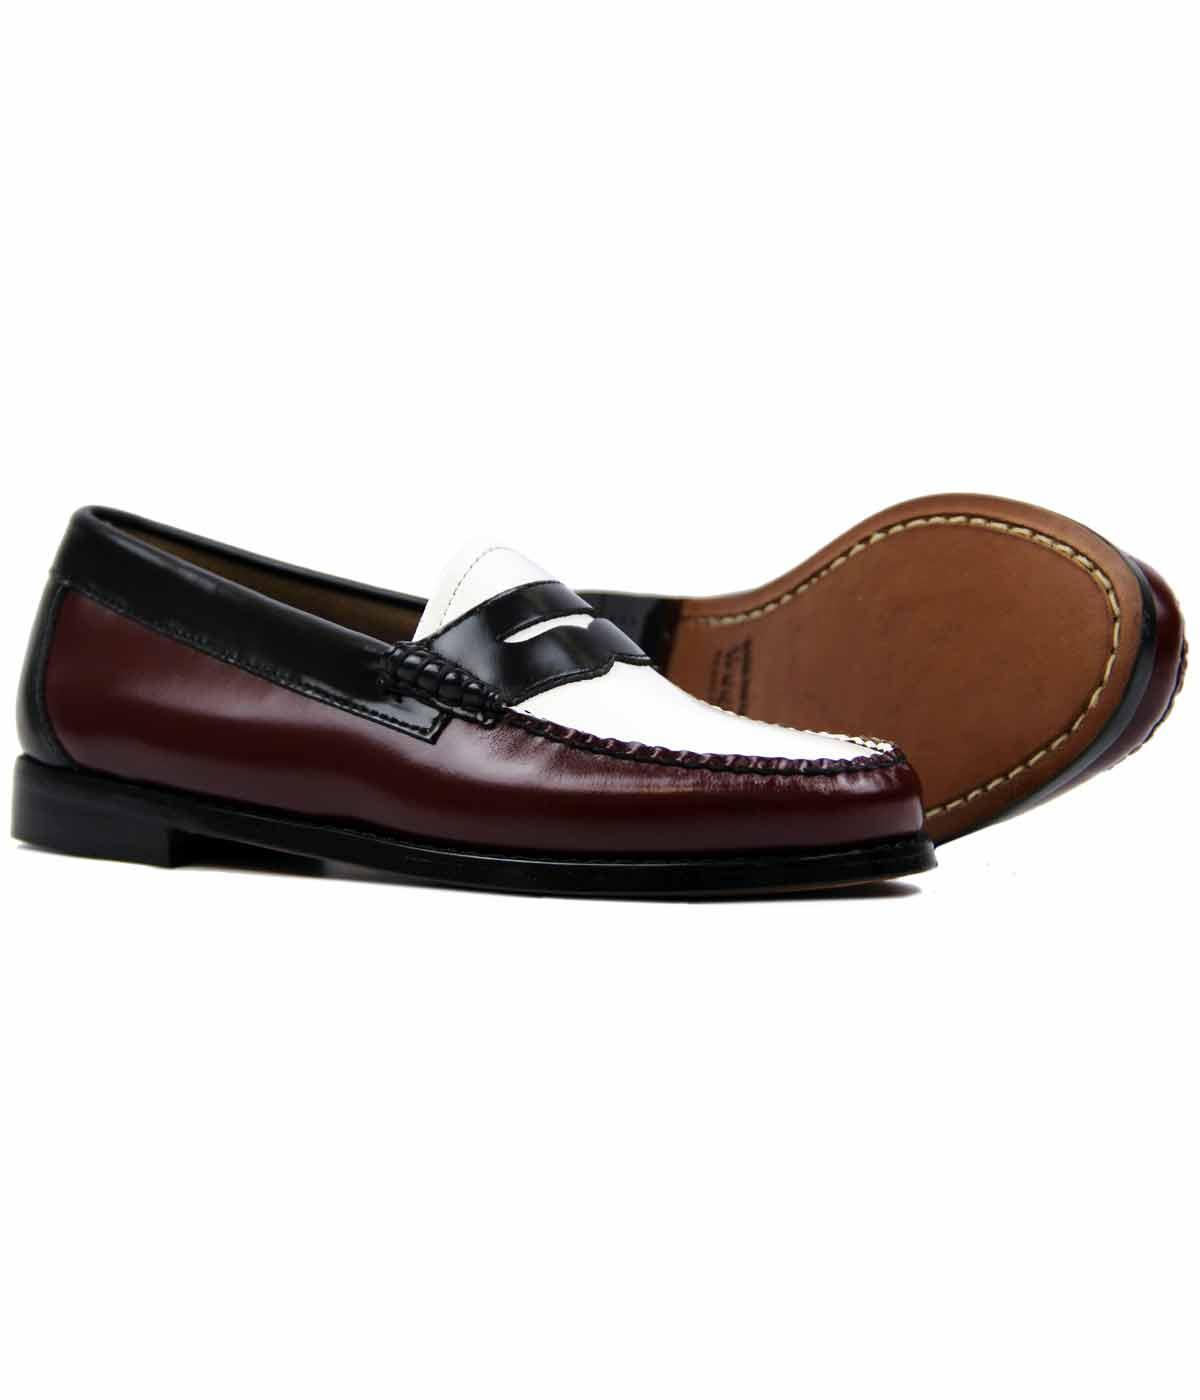 34766108b5a BASS WEEJUNS Womens Retro 60s Penny Loafers in Bordo Black White